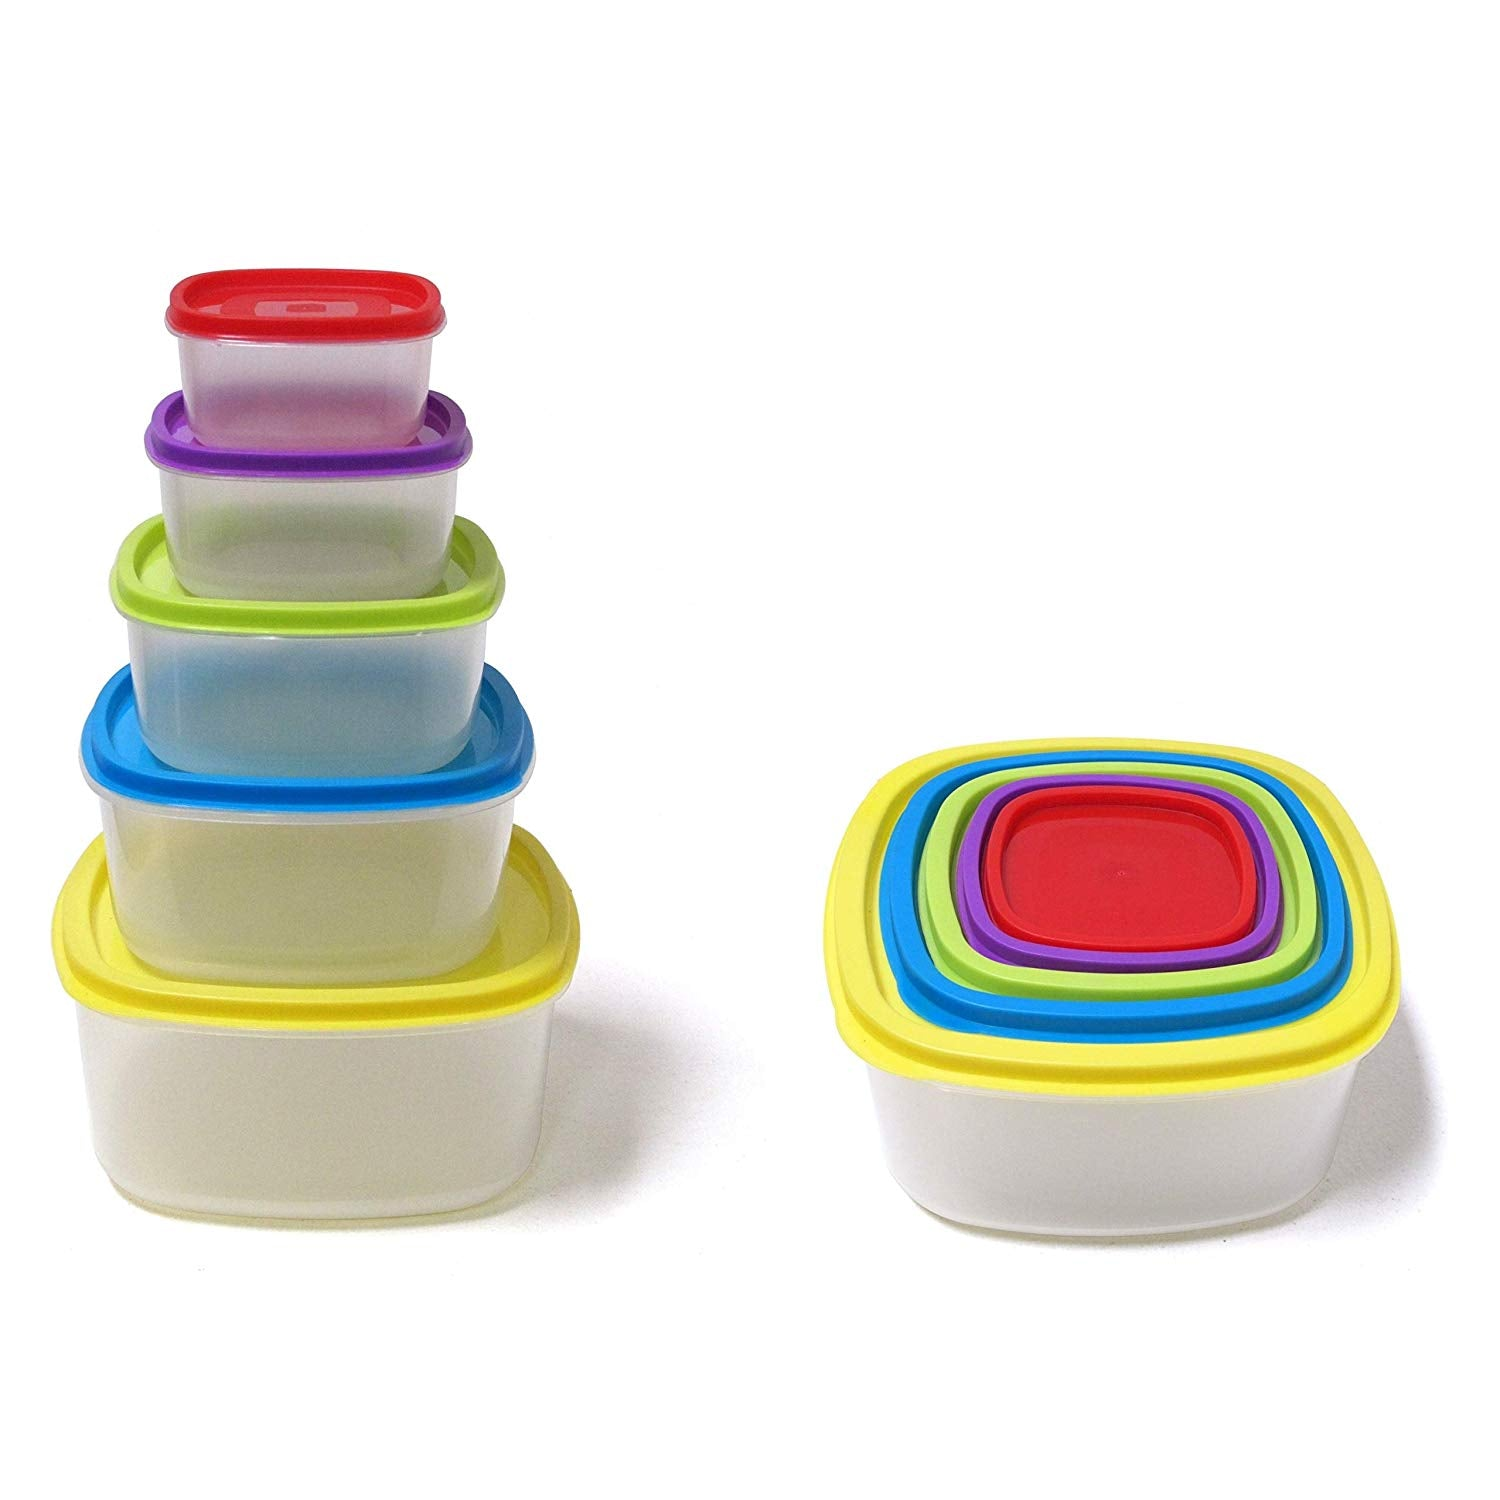 Always Fresh Plastic Food Containers Fiesta Edition Rectangle - 10 pcs Set